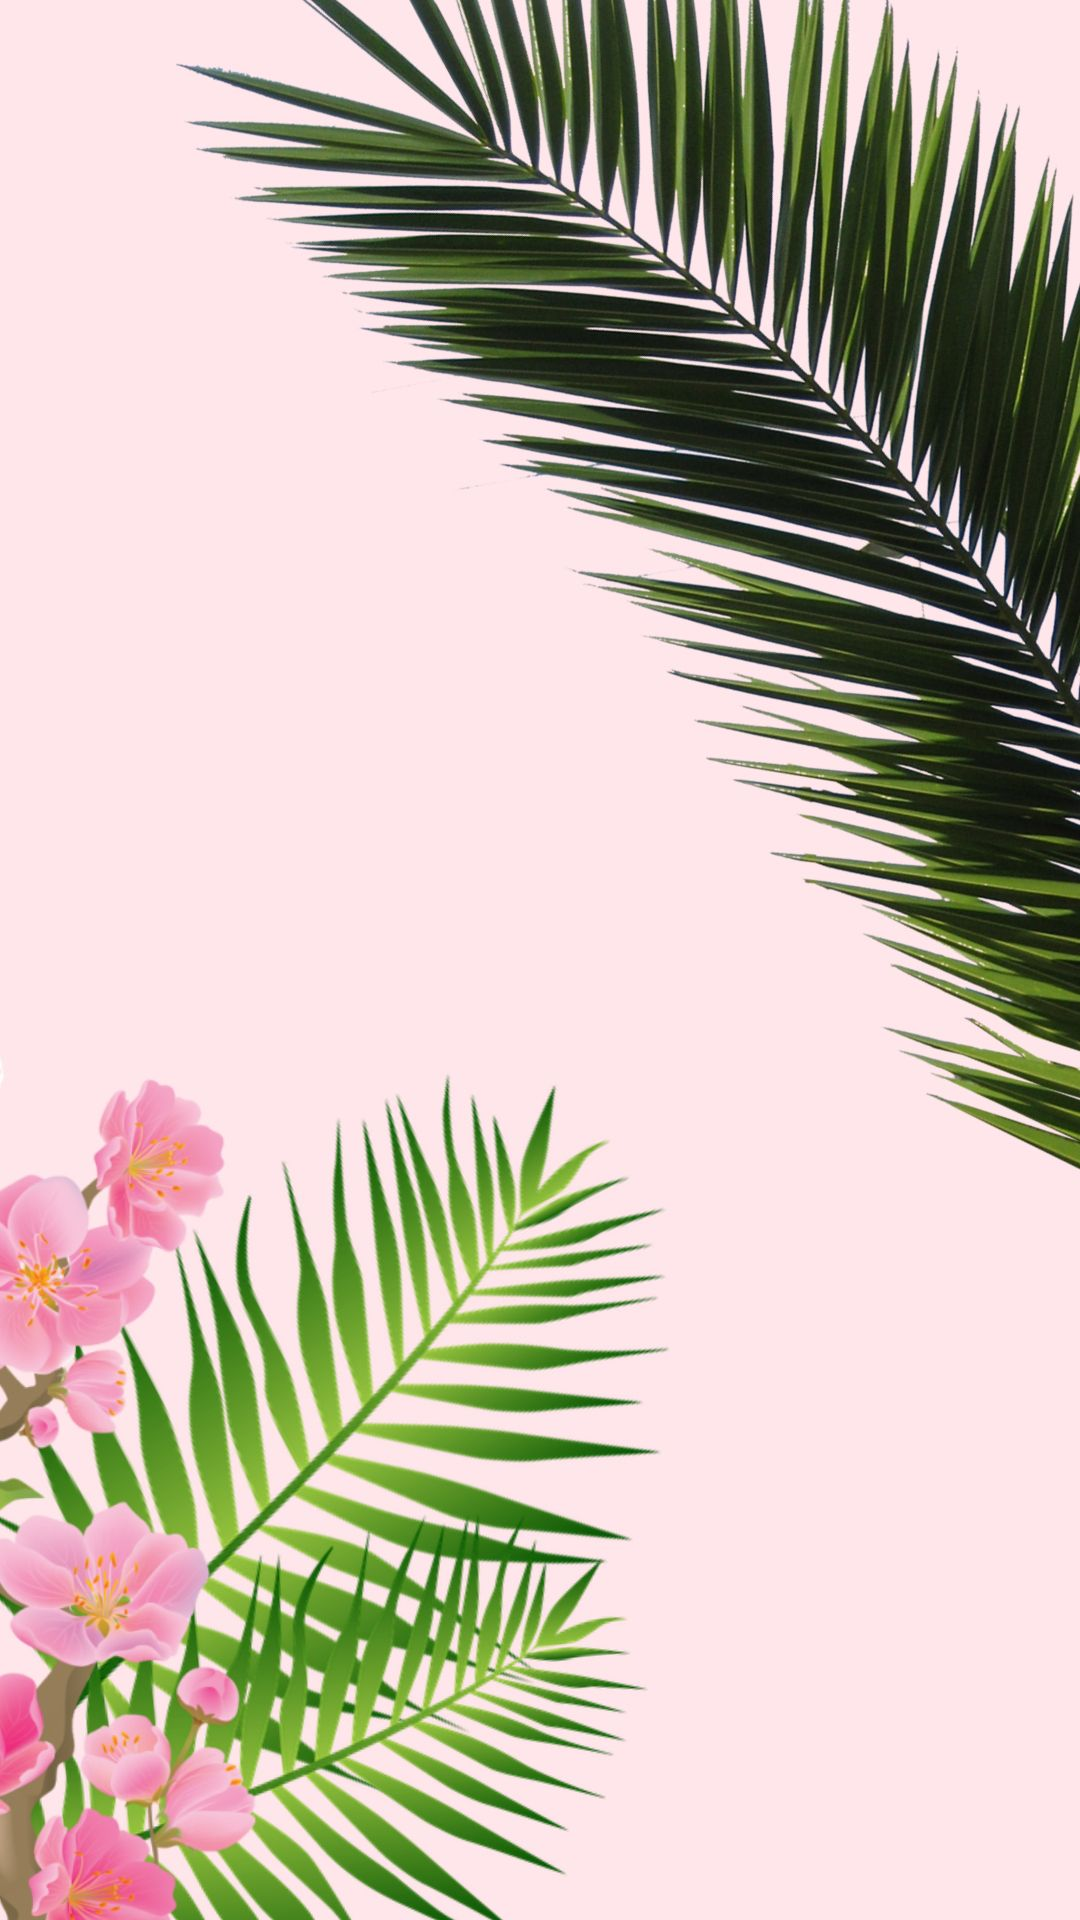 Aesthetic Palm Tree Phone Wallpapers Top Free Aesthetic Palm Tree